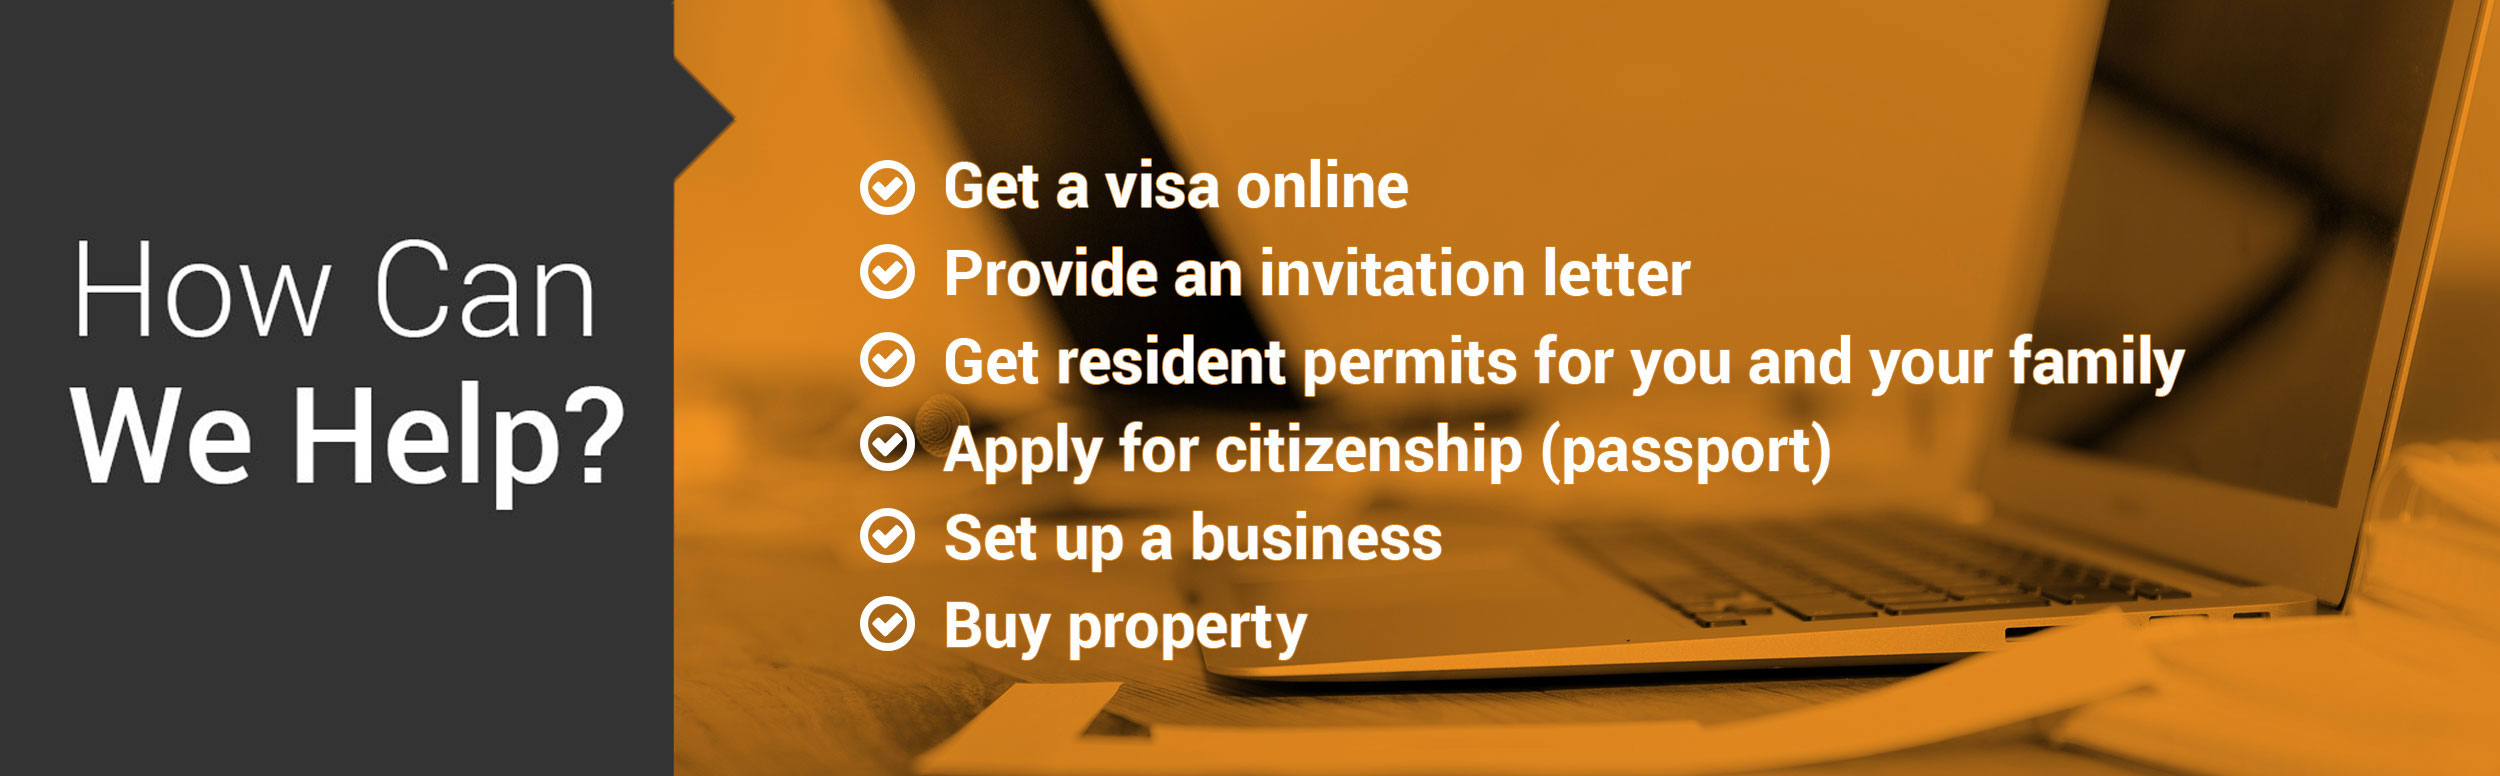 invitation letter for australibusiness visa%0A How to get russian invitation letter spain portugal luxembourg greece  finland or israel belgium holland how